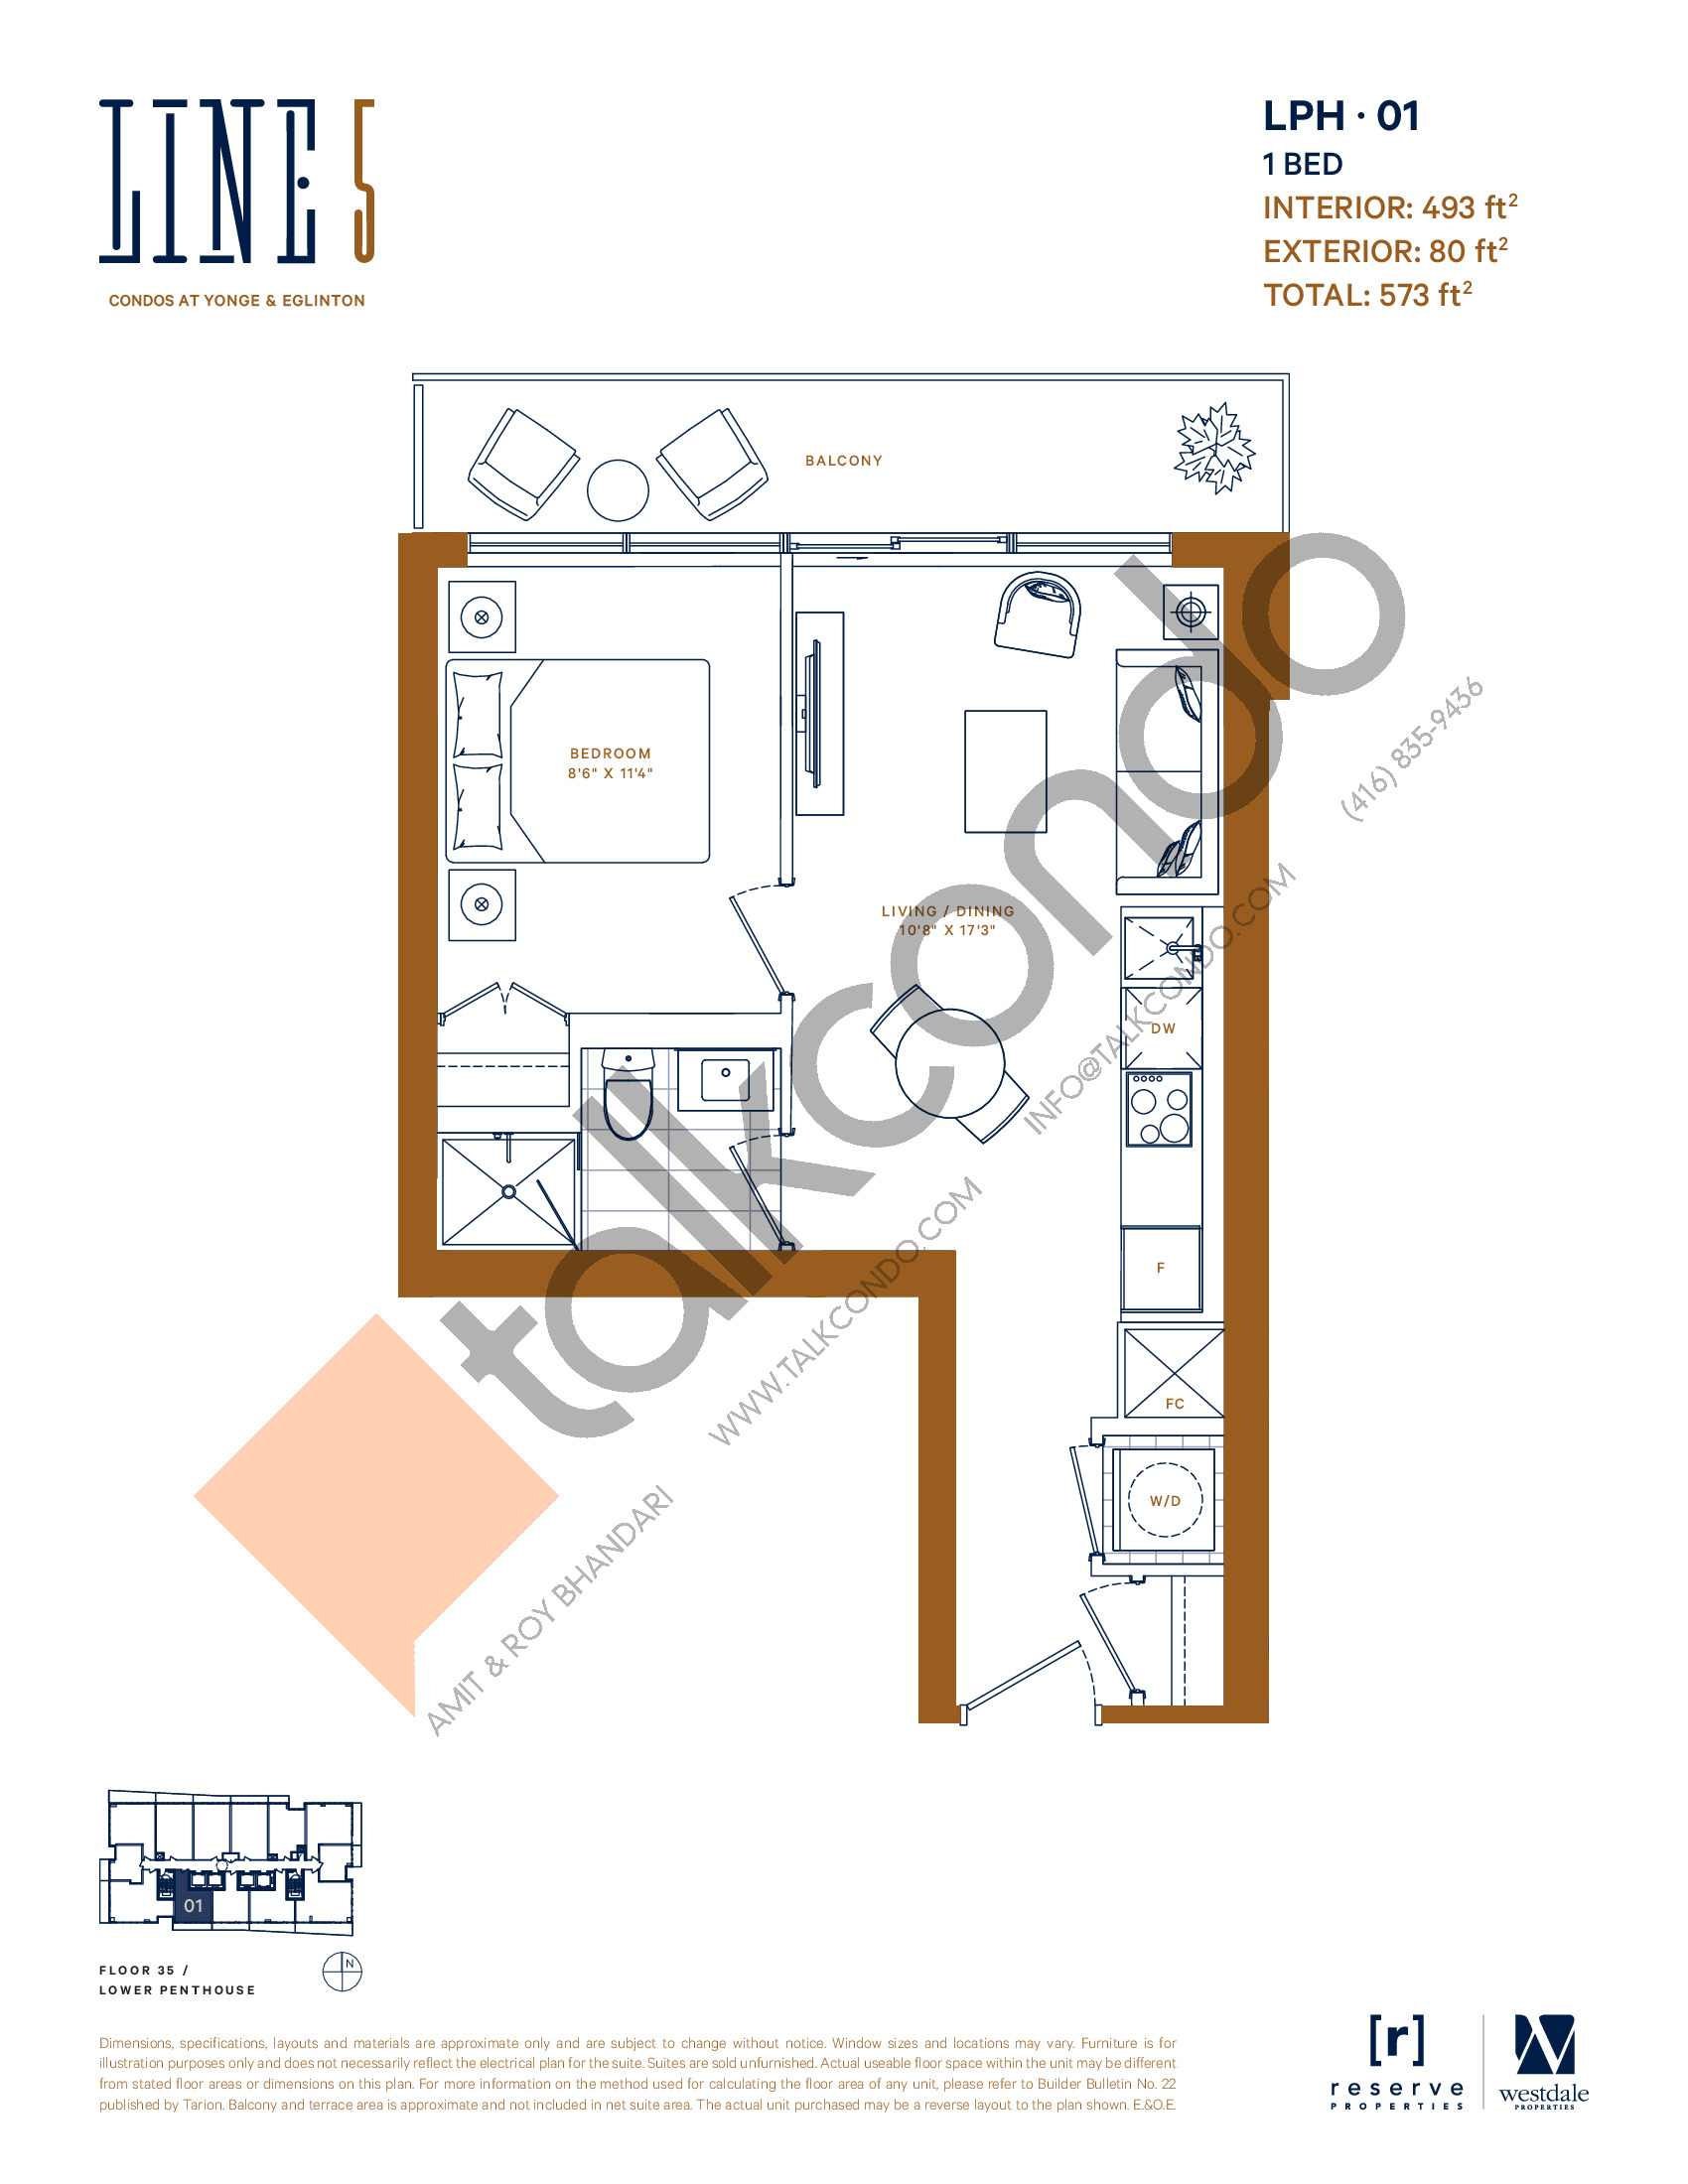 LPH-01 Floor Plan at Line 5 South Tower Condos - 493 sq.ft